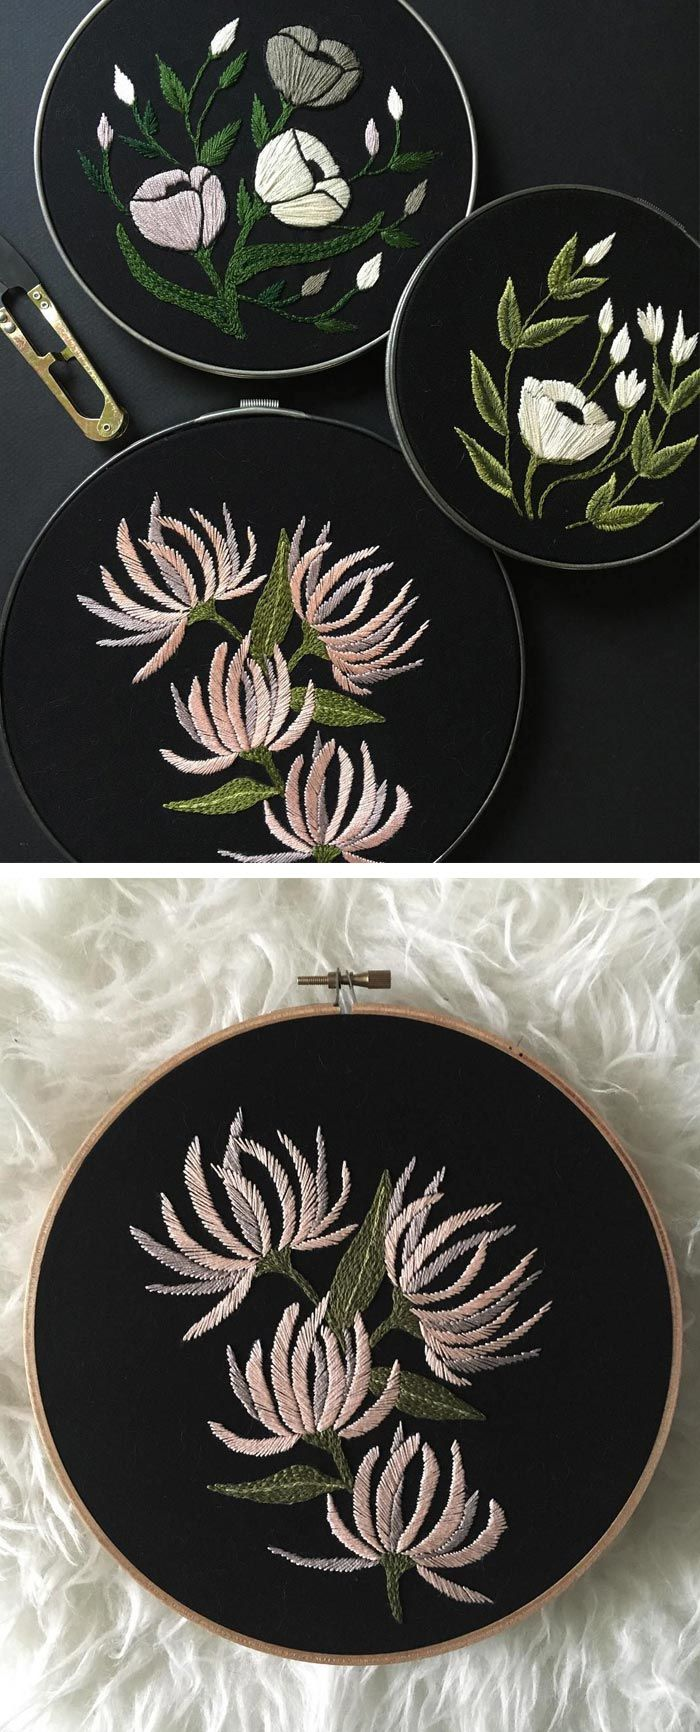 Embroidered hoop art by Tusk and Cardinal // embroidery